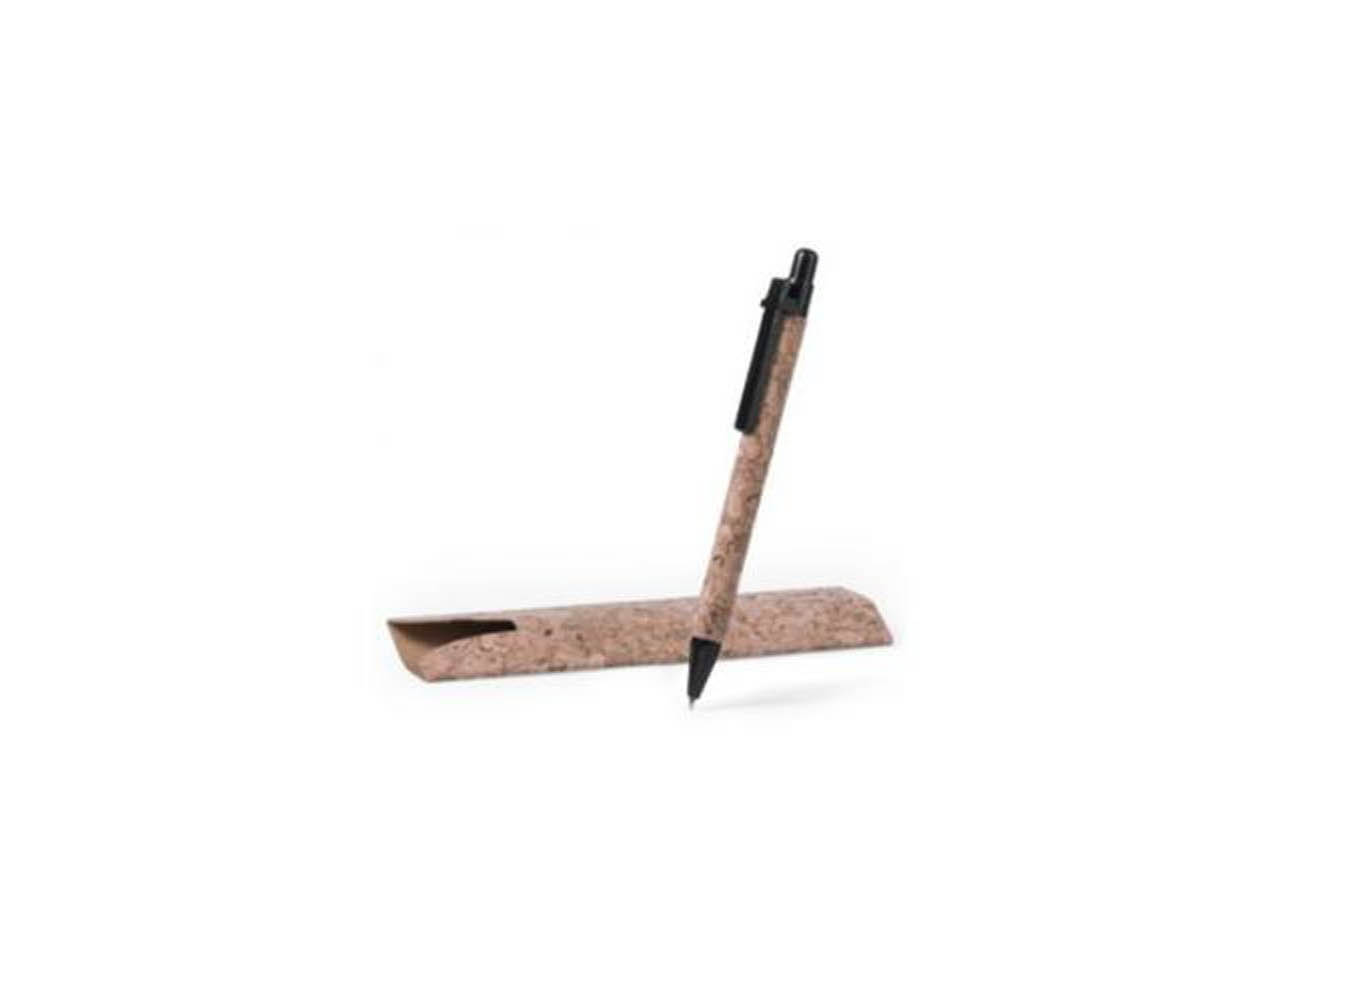 Cork Pen with Cork Fabric Paper Packaging